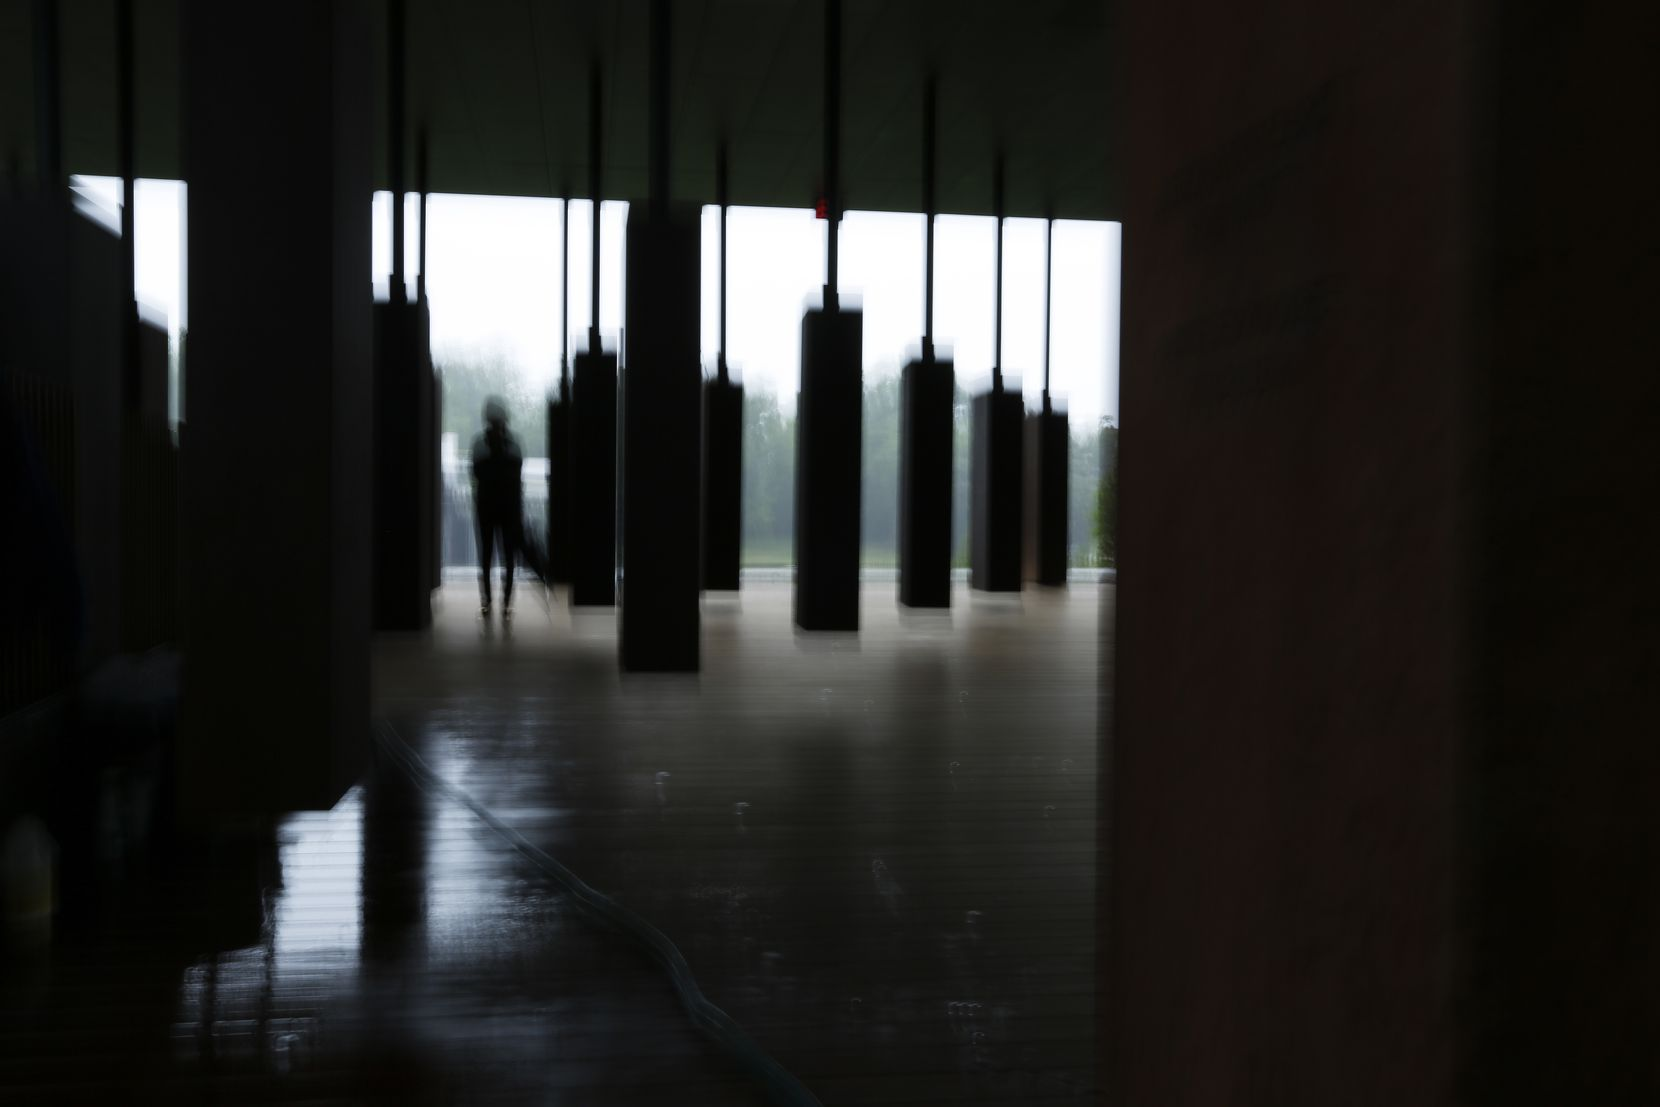 The National Memorial for Peace and Justice honors thousands of people killed in racist lynchings.